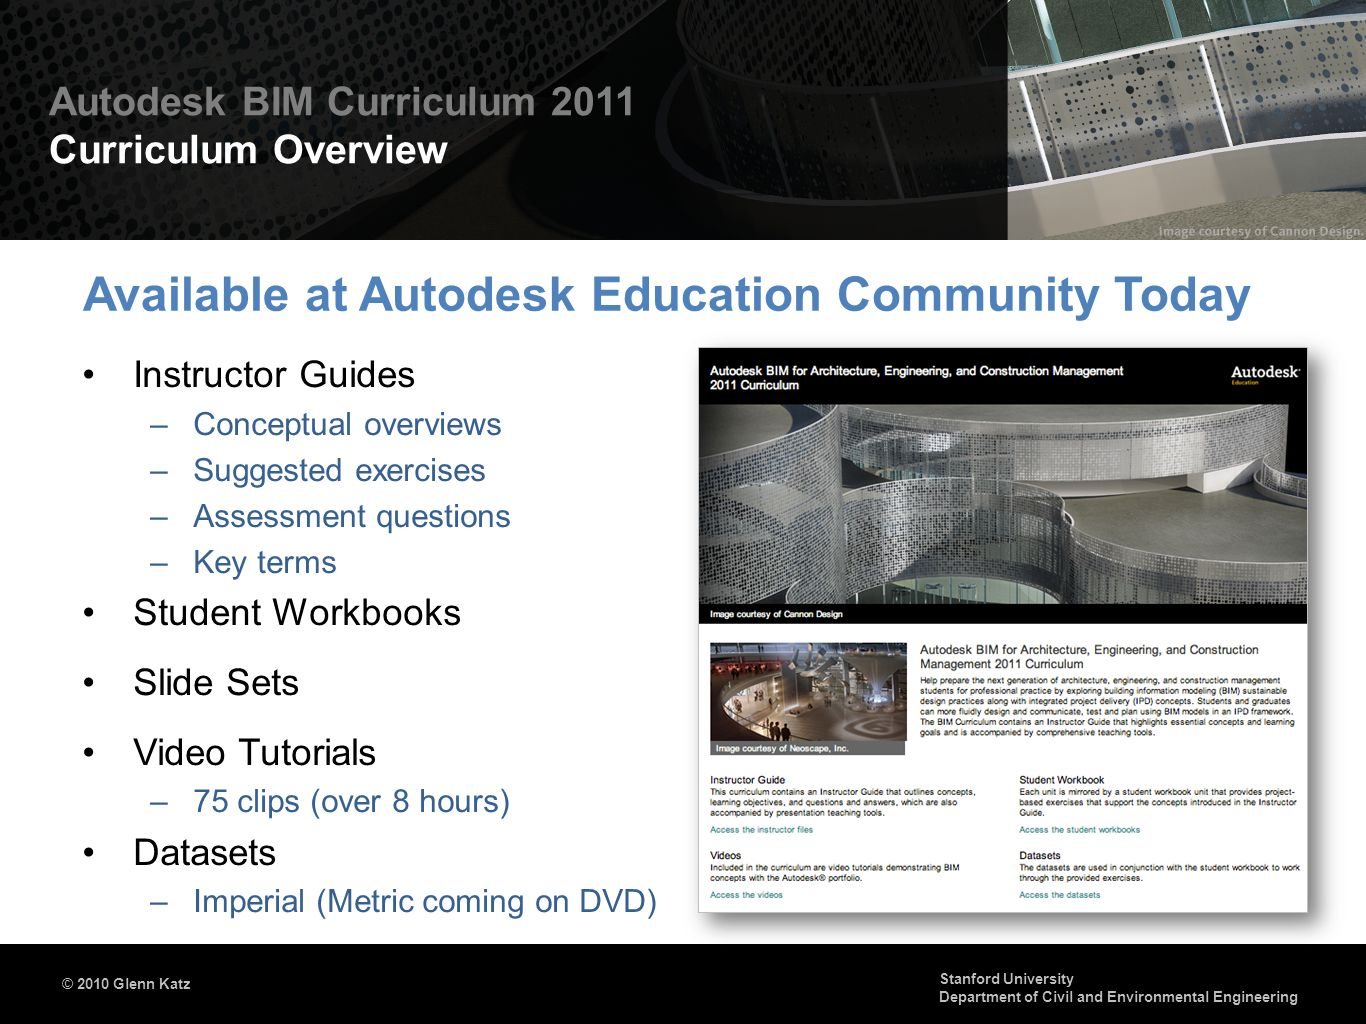 Available at Autodesk Education Community Today